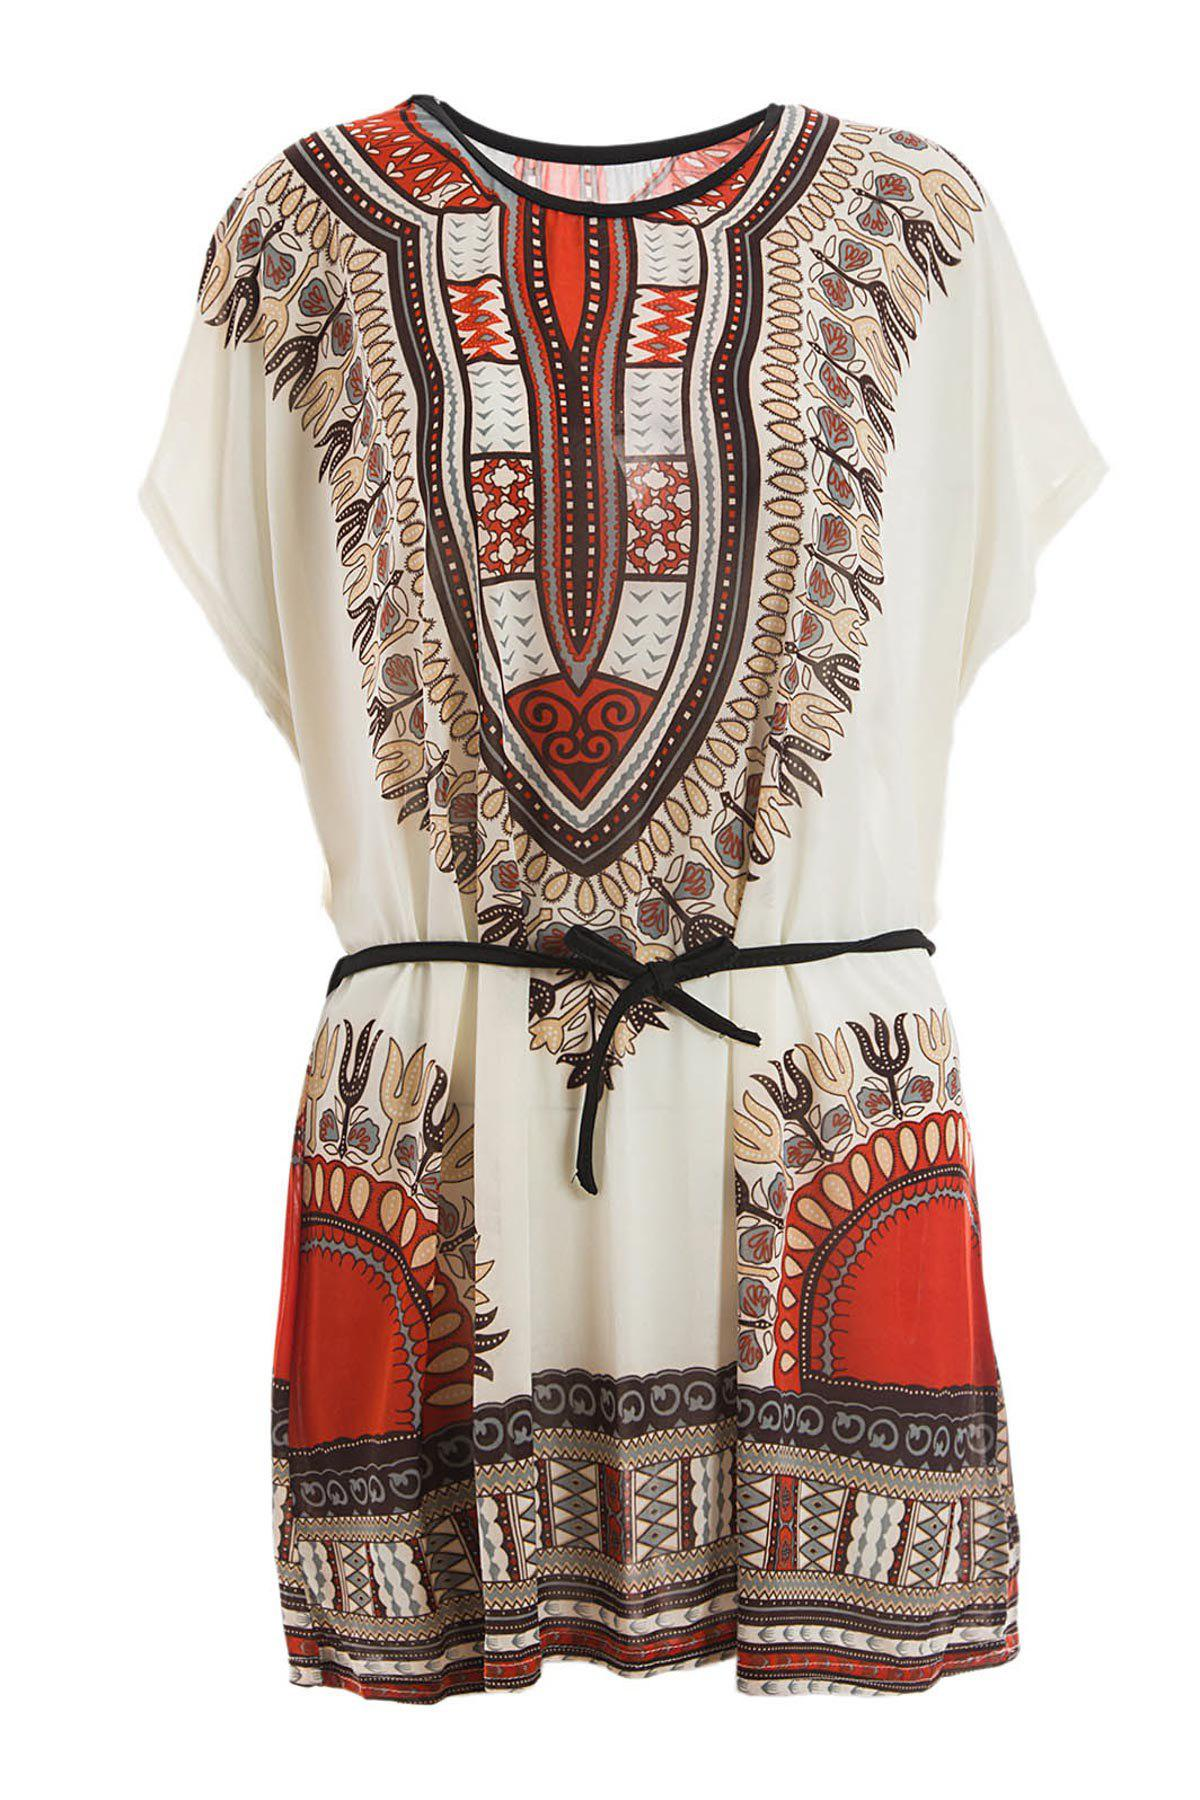 Batwing Sleeve Retro Style V-Neck Ethnic Pattern Dress For Women - JACINTH ONE SIZE